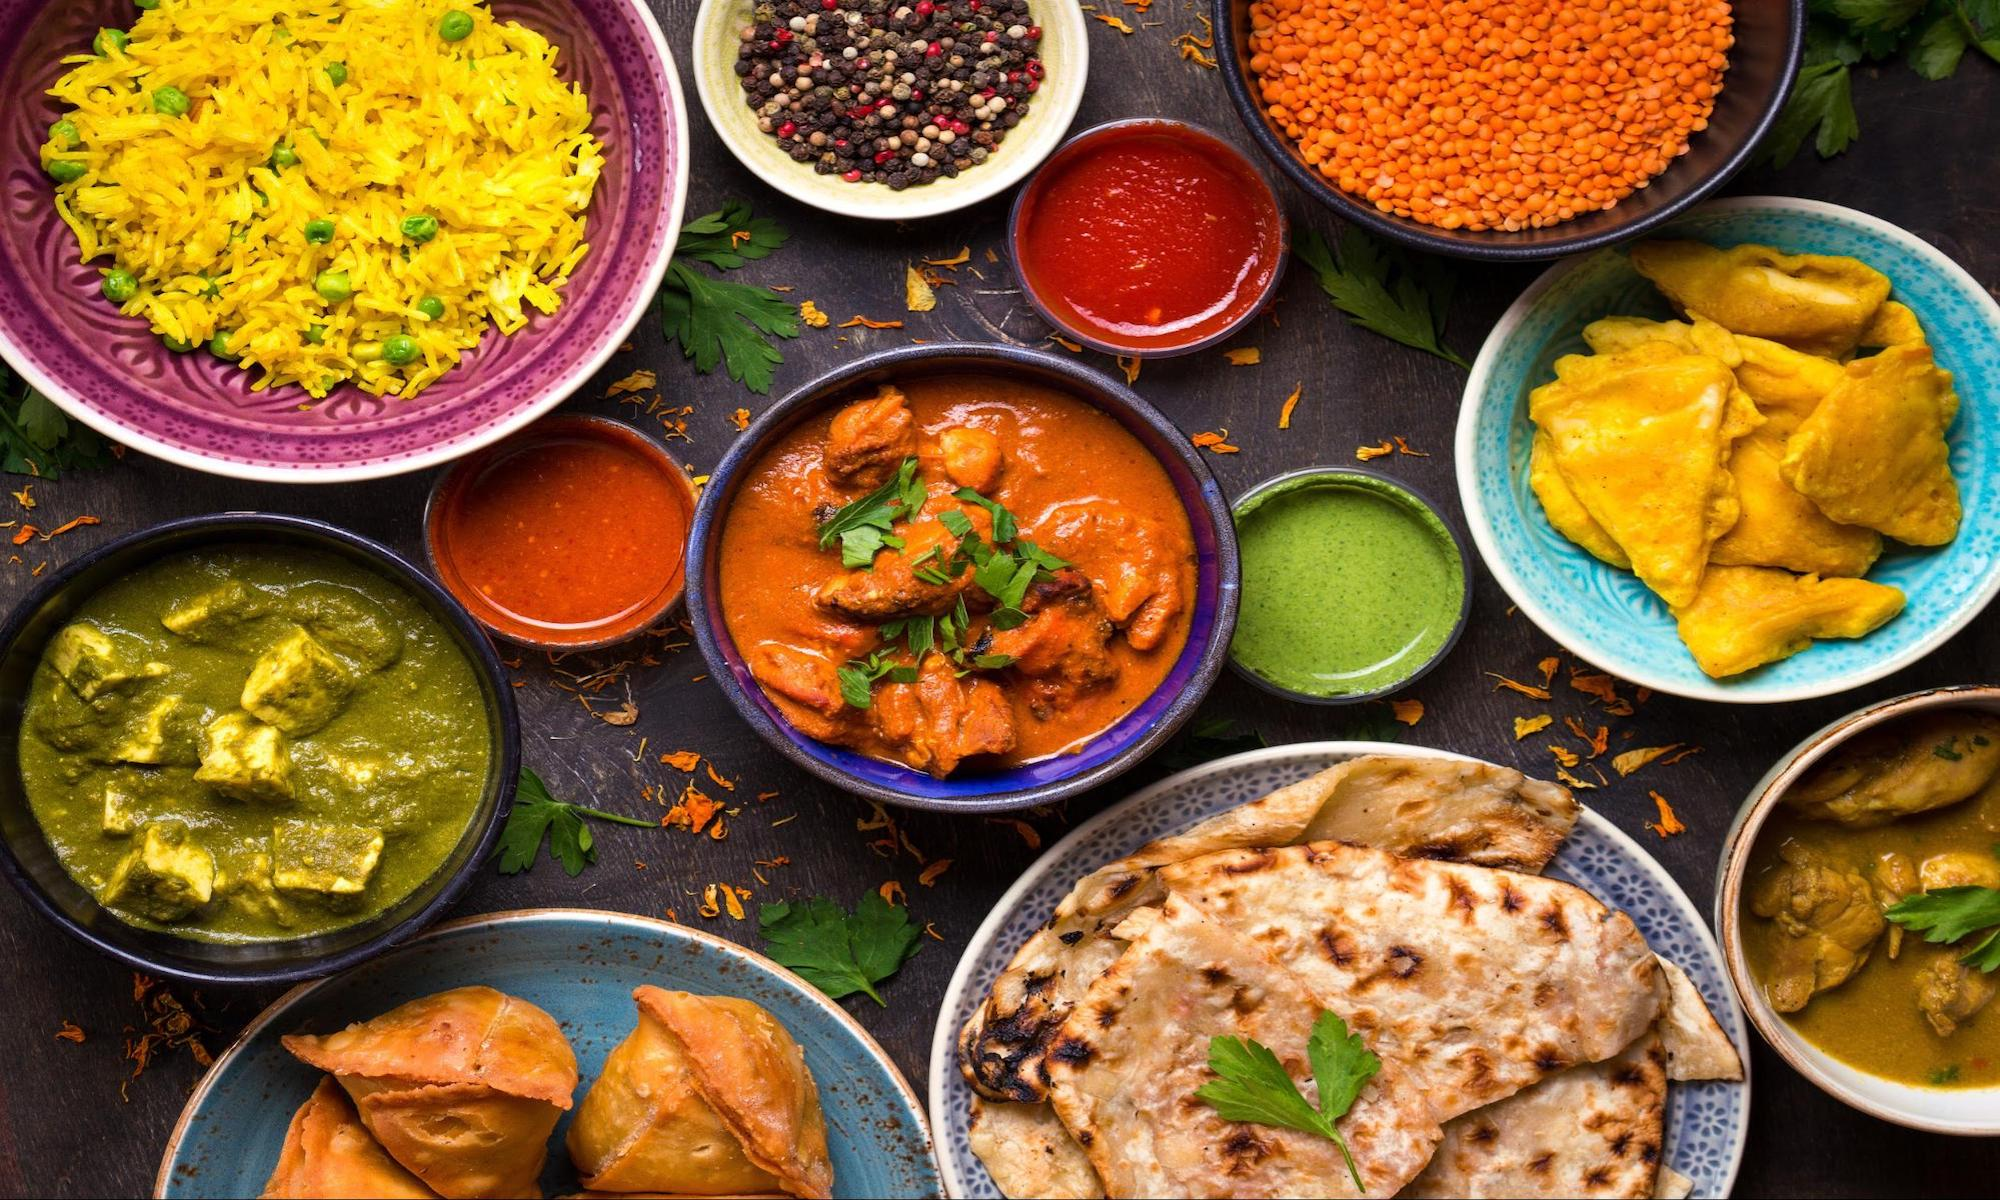 TOP 5 INDIAN FOOD PICKS ON WHYQ!